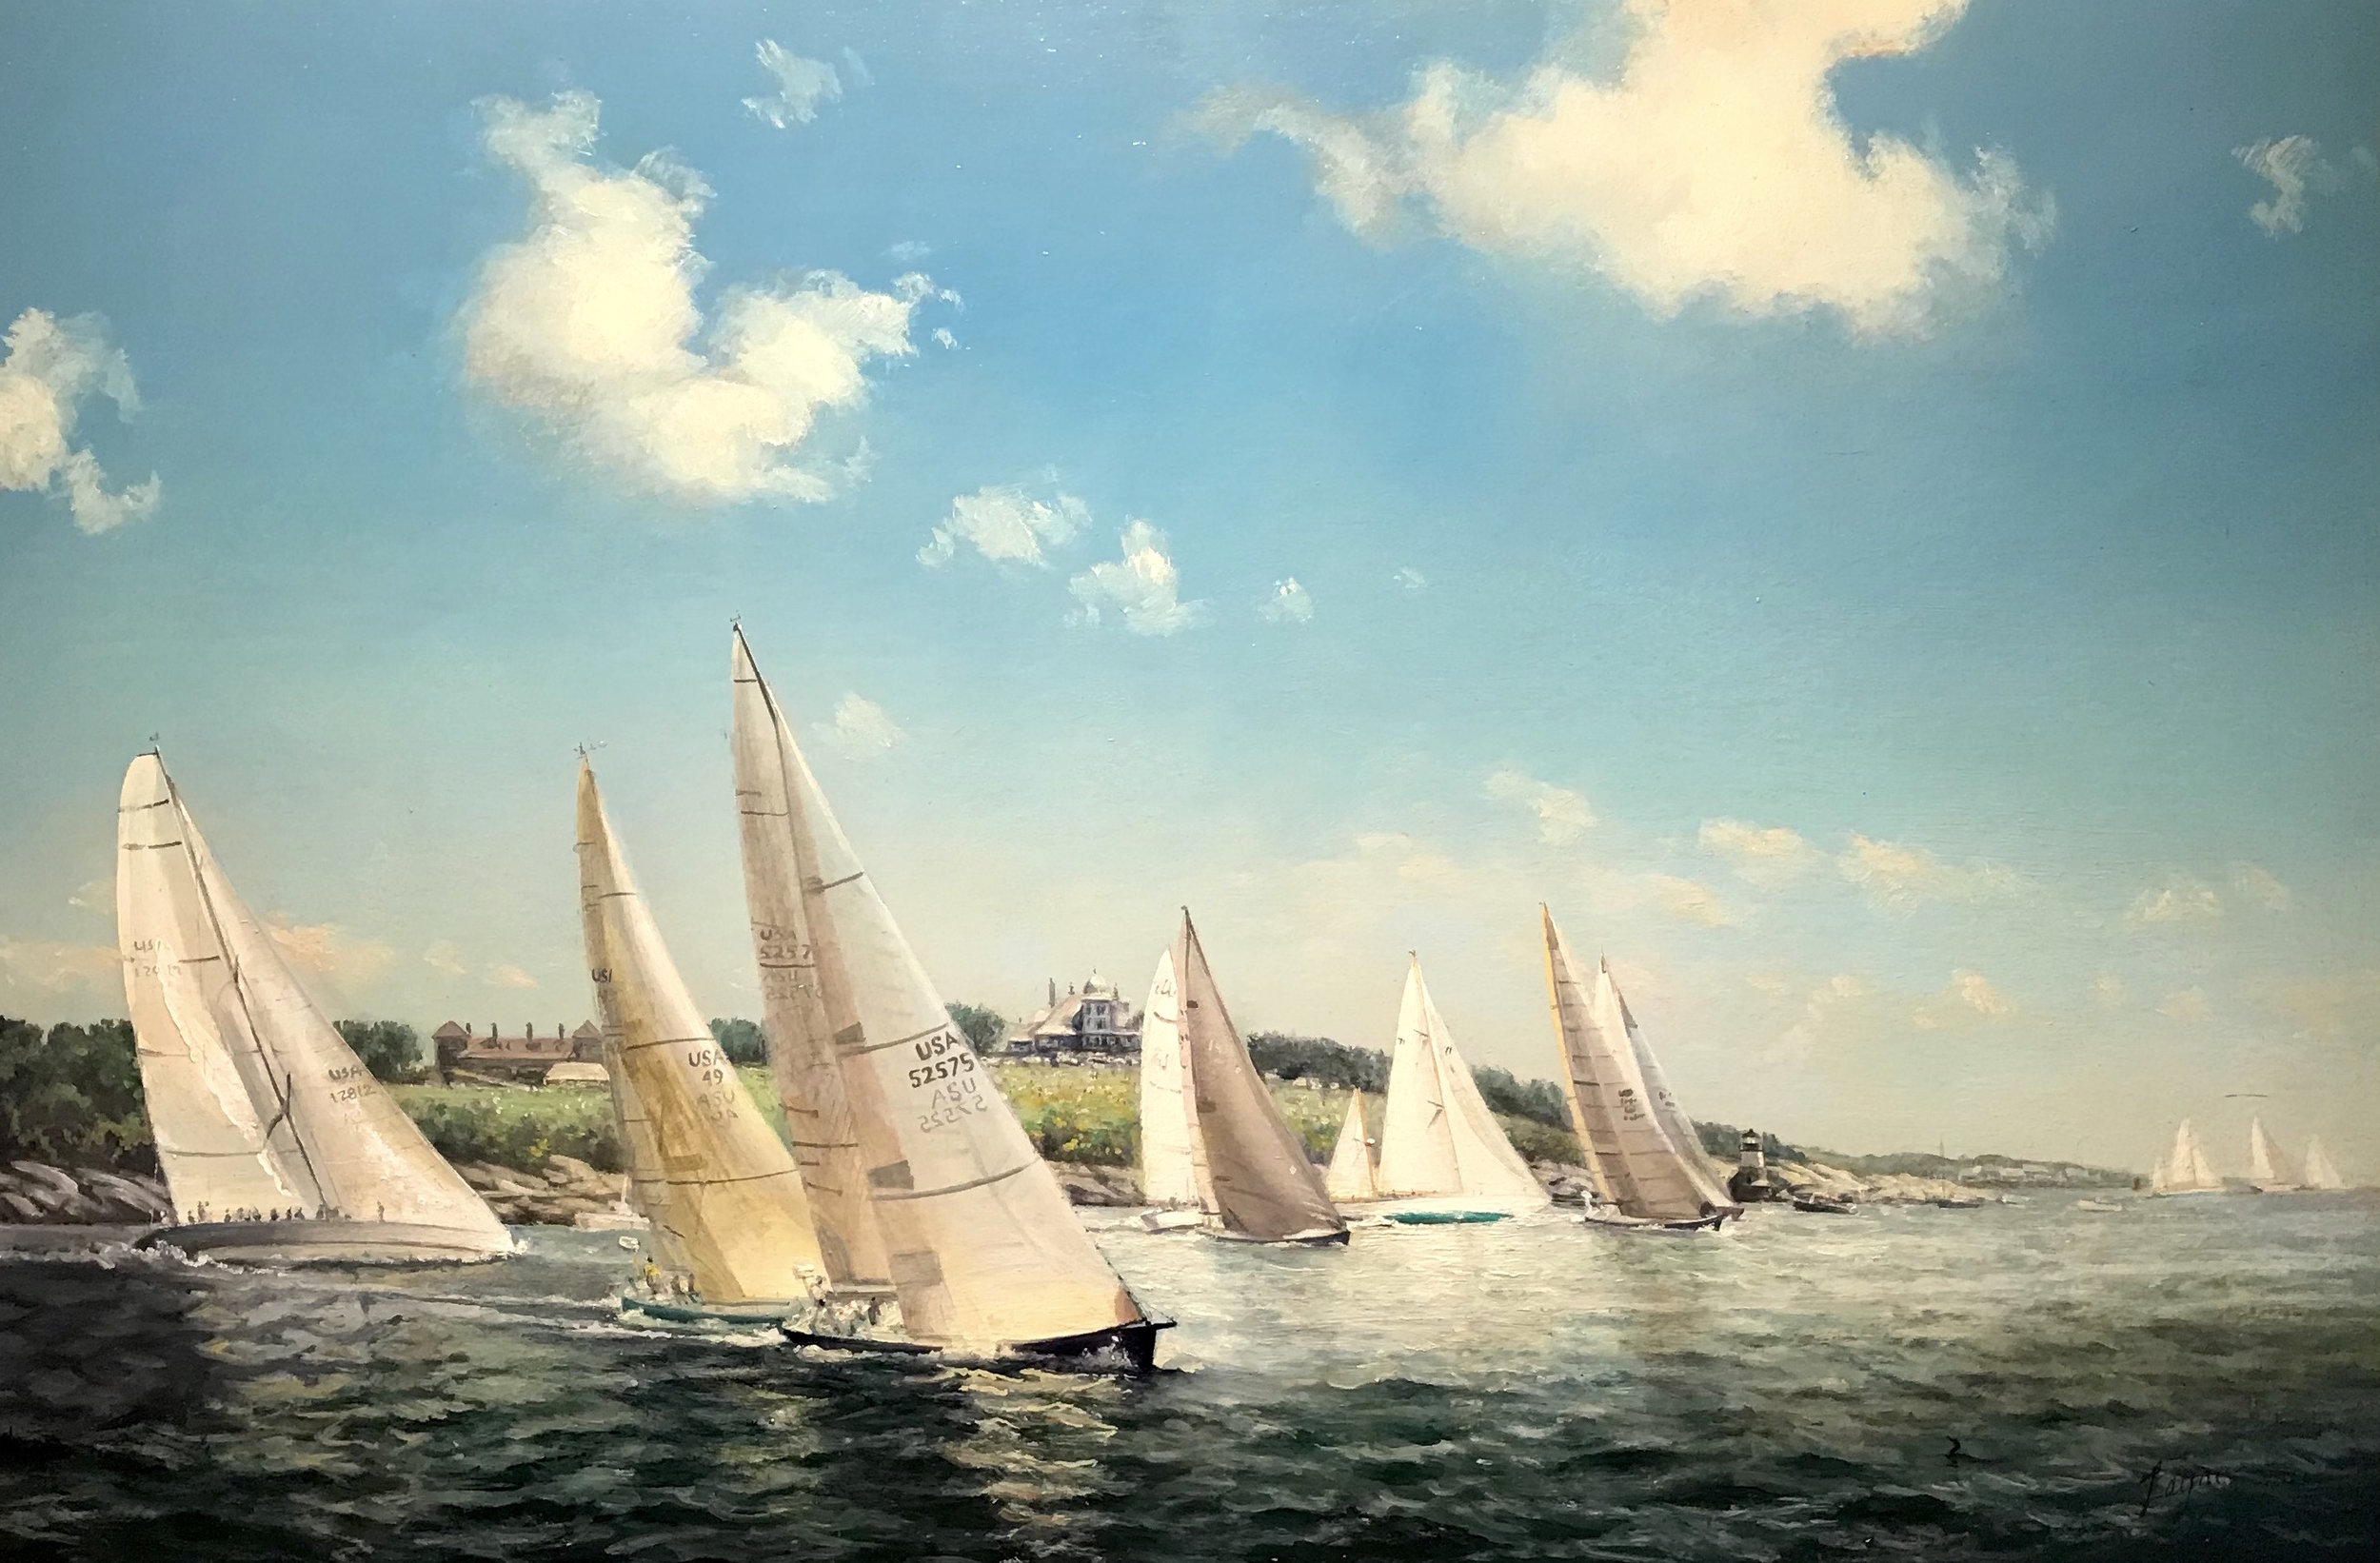 Peter Arguimbau, The Start, Newport to Bermuda Race